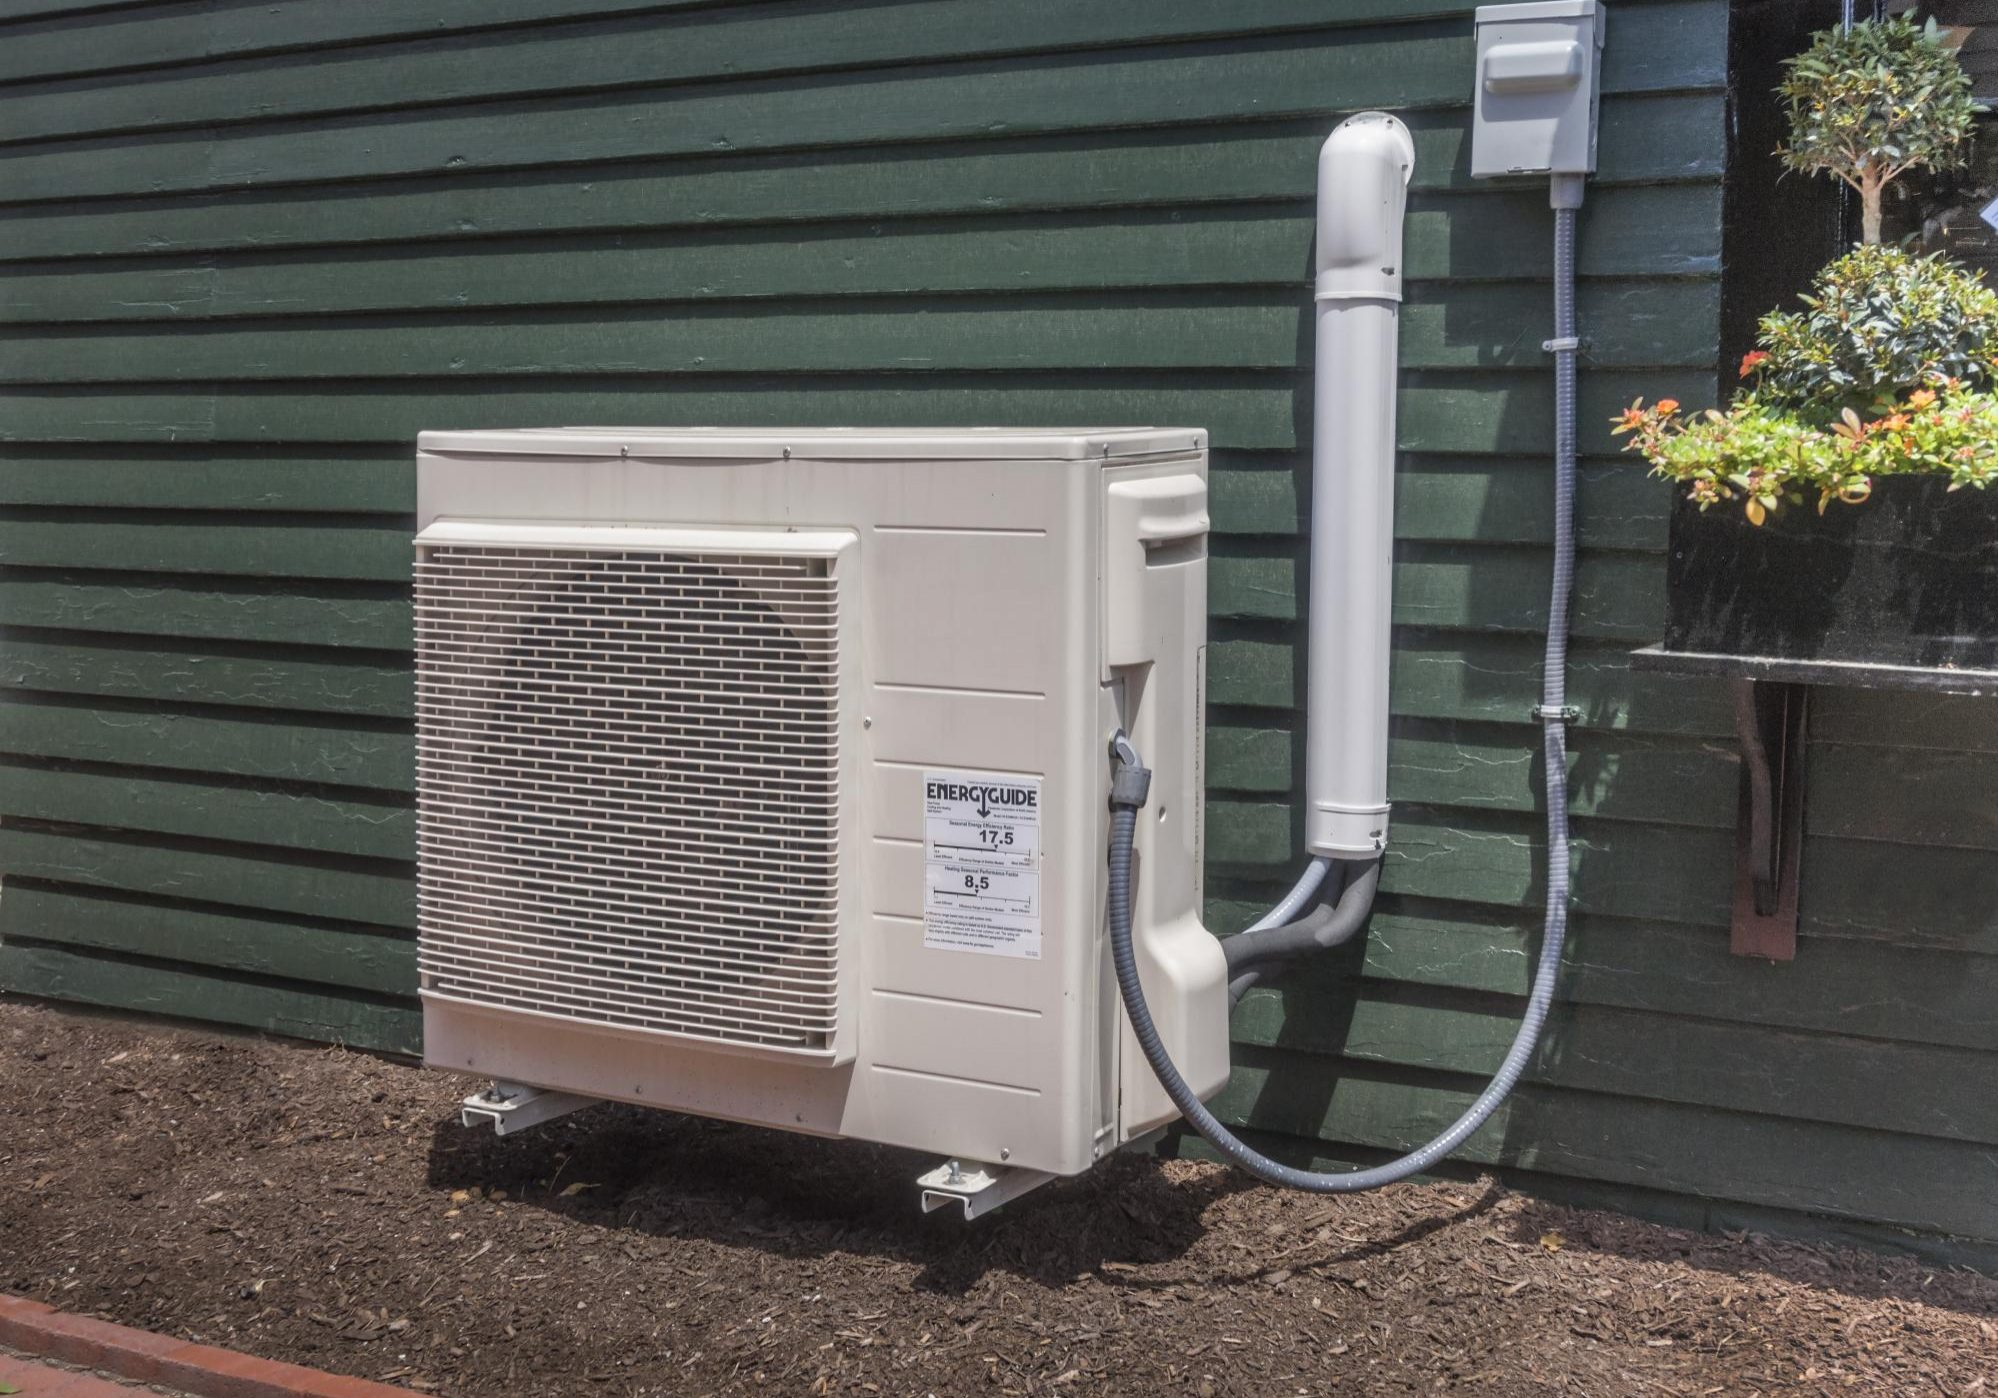 This is a picture of an ac unit.